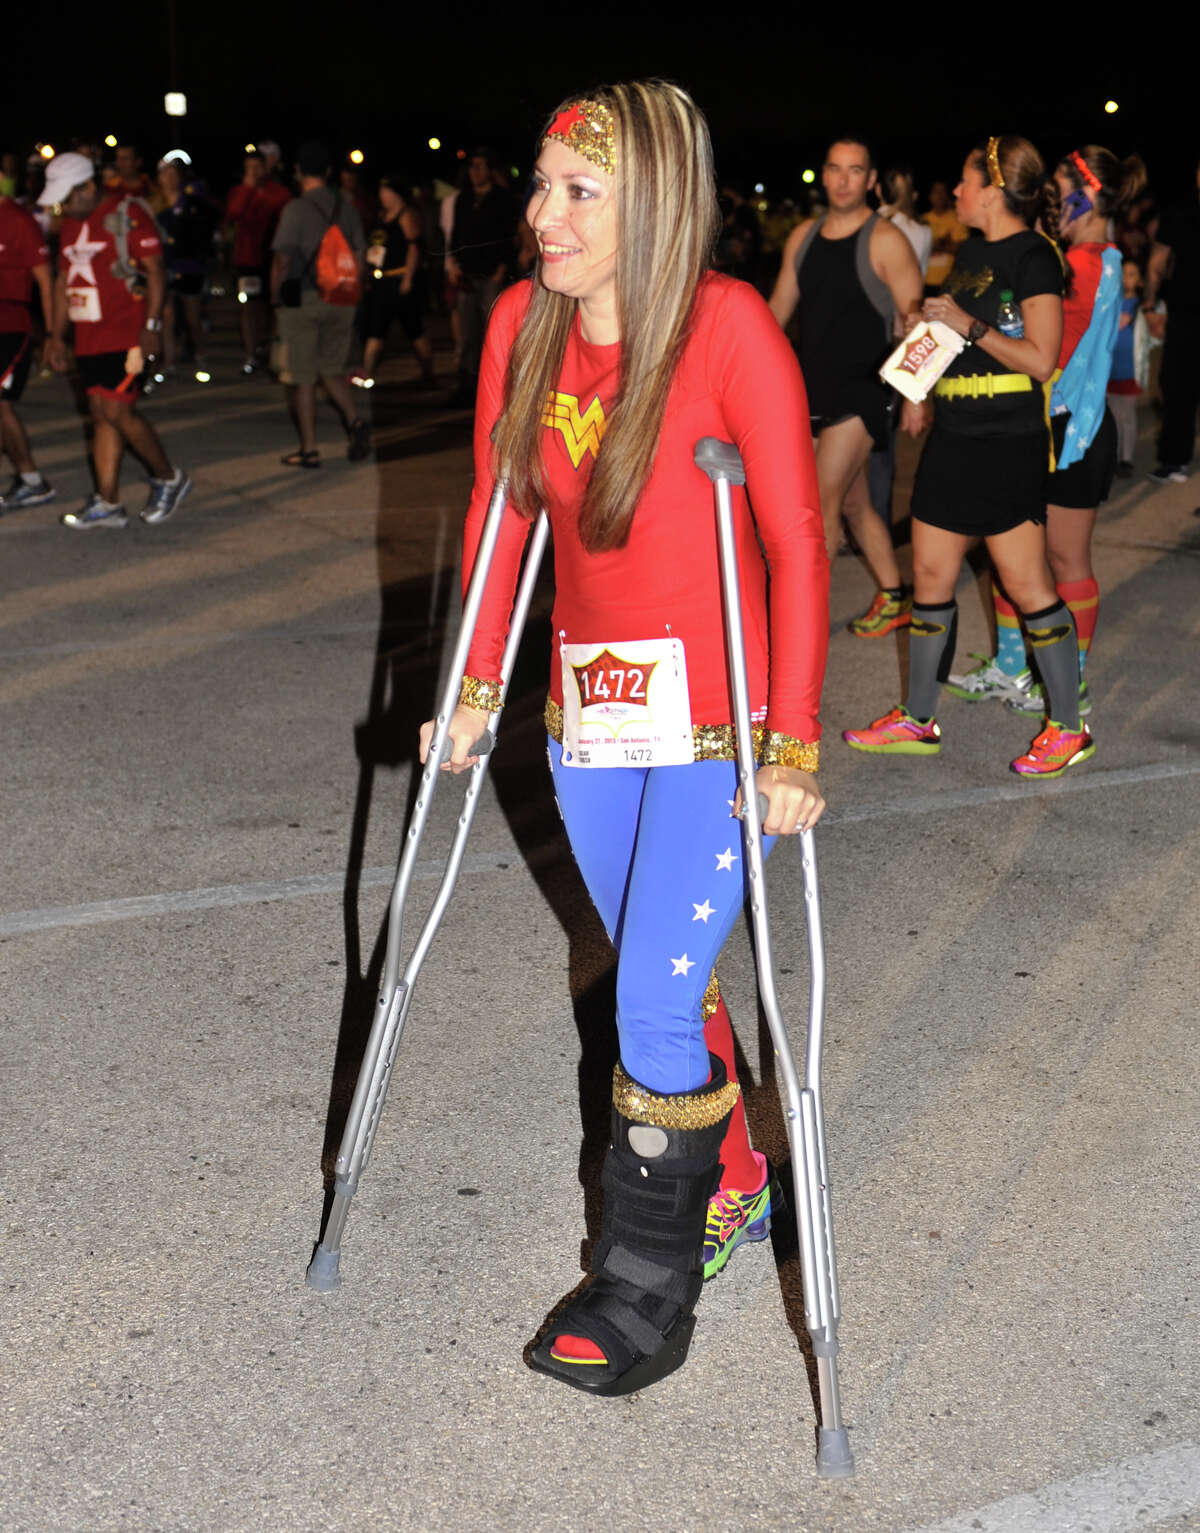 A recently torn ankle ligament wasn't going to deter Melissa Barrera-Pintor, dressed as Wonder Woman, from participating in the inaugural Hero-thon half-marathon early Sunday. The event benefits the Leukemia and Lymphoma Society.